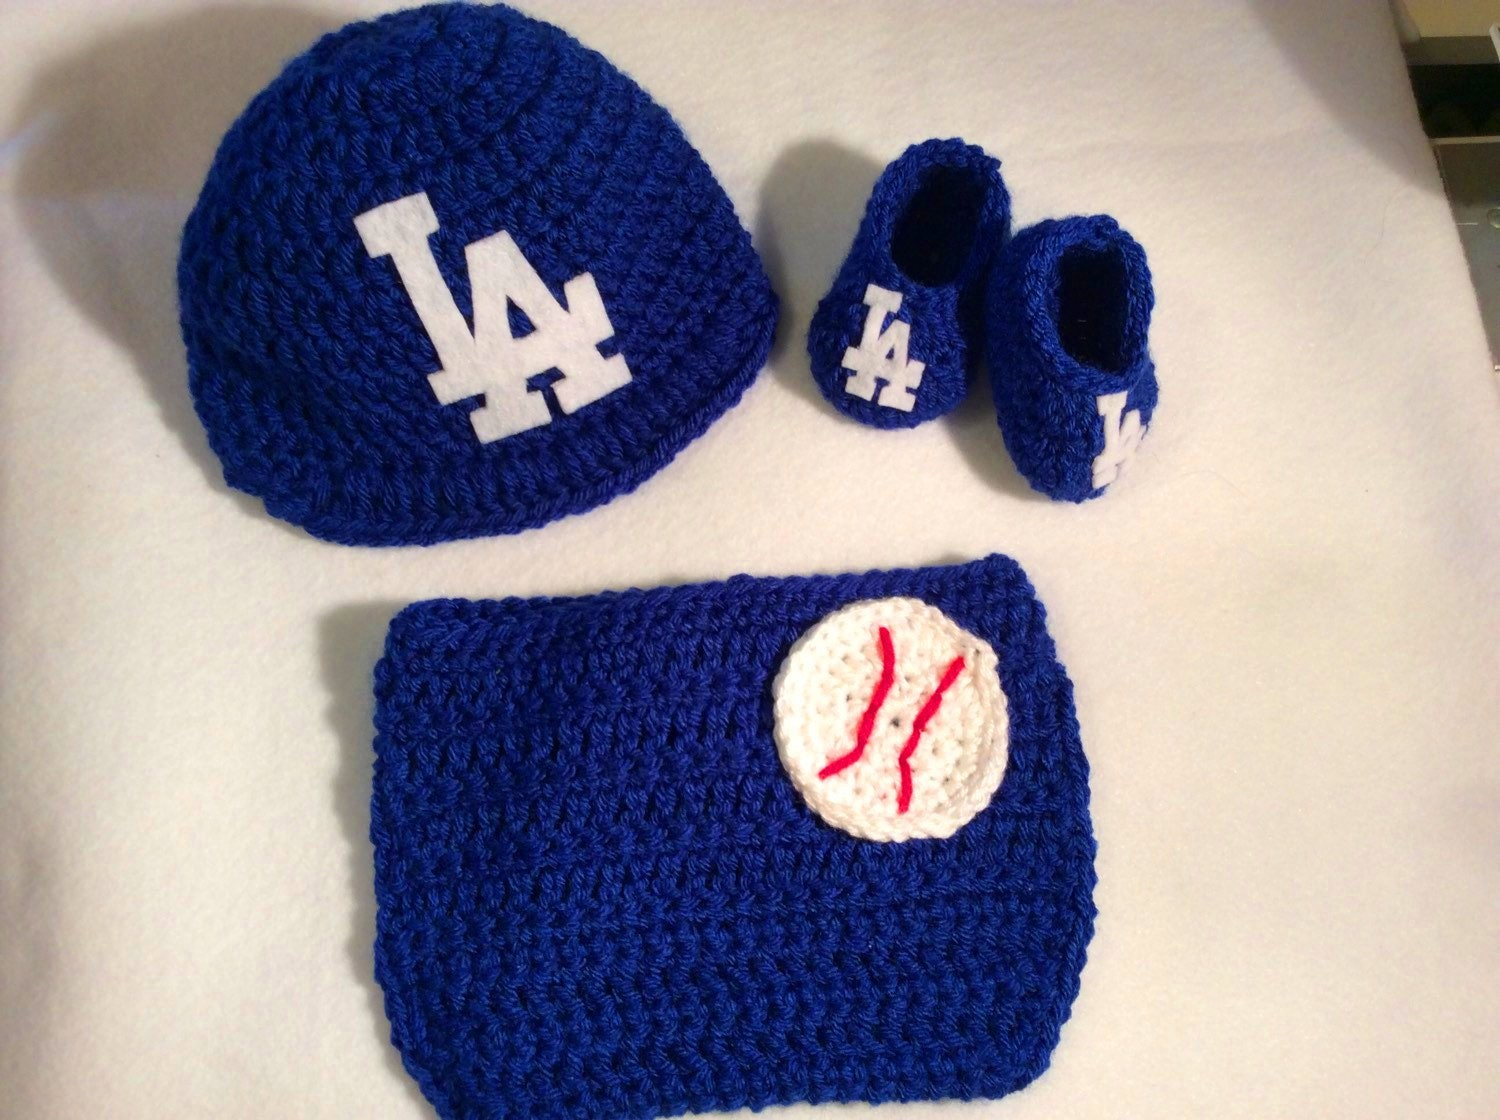 Baby Gift Los Angeles : Free shipping los angeles dodgers newborn baby set